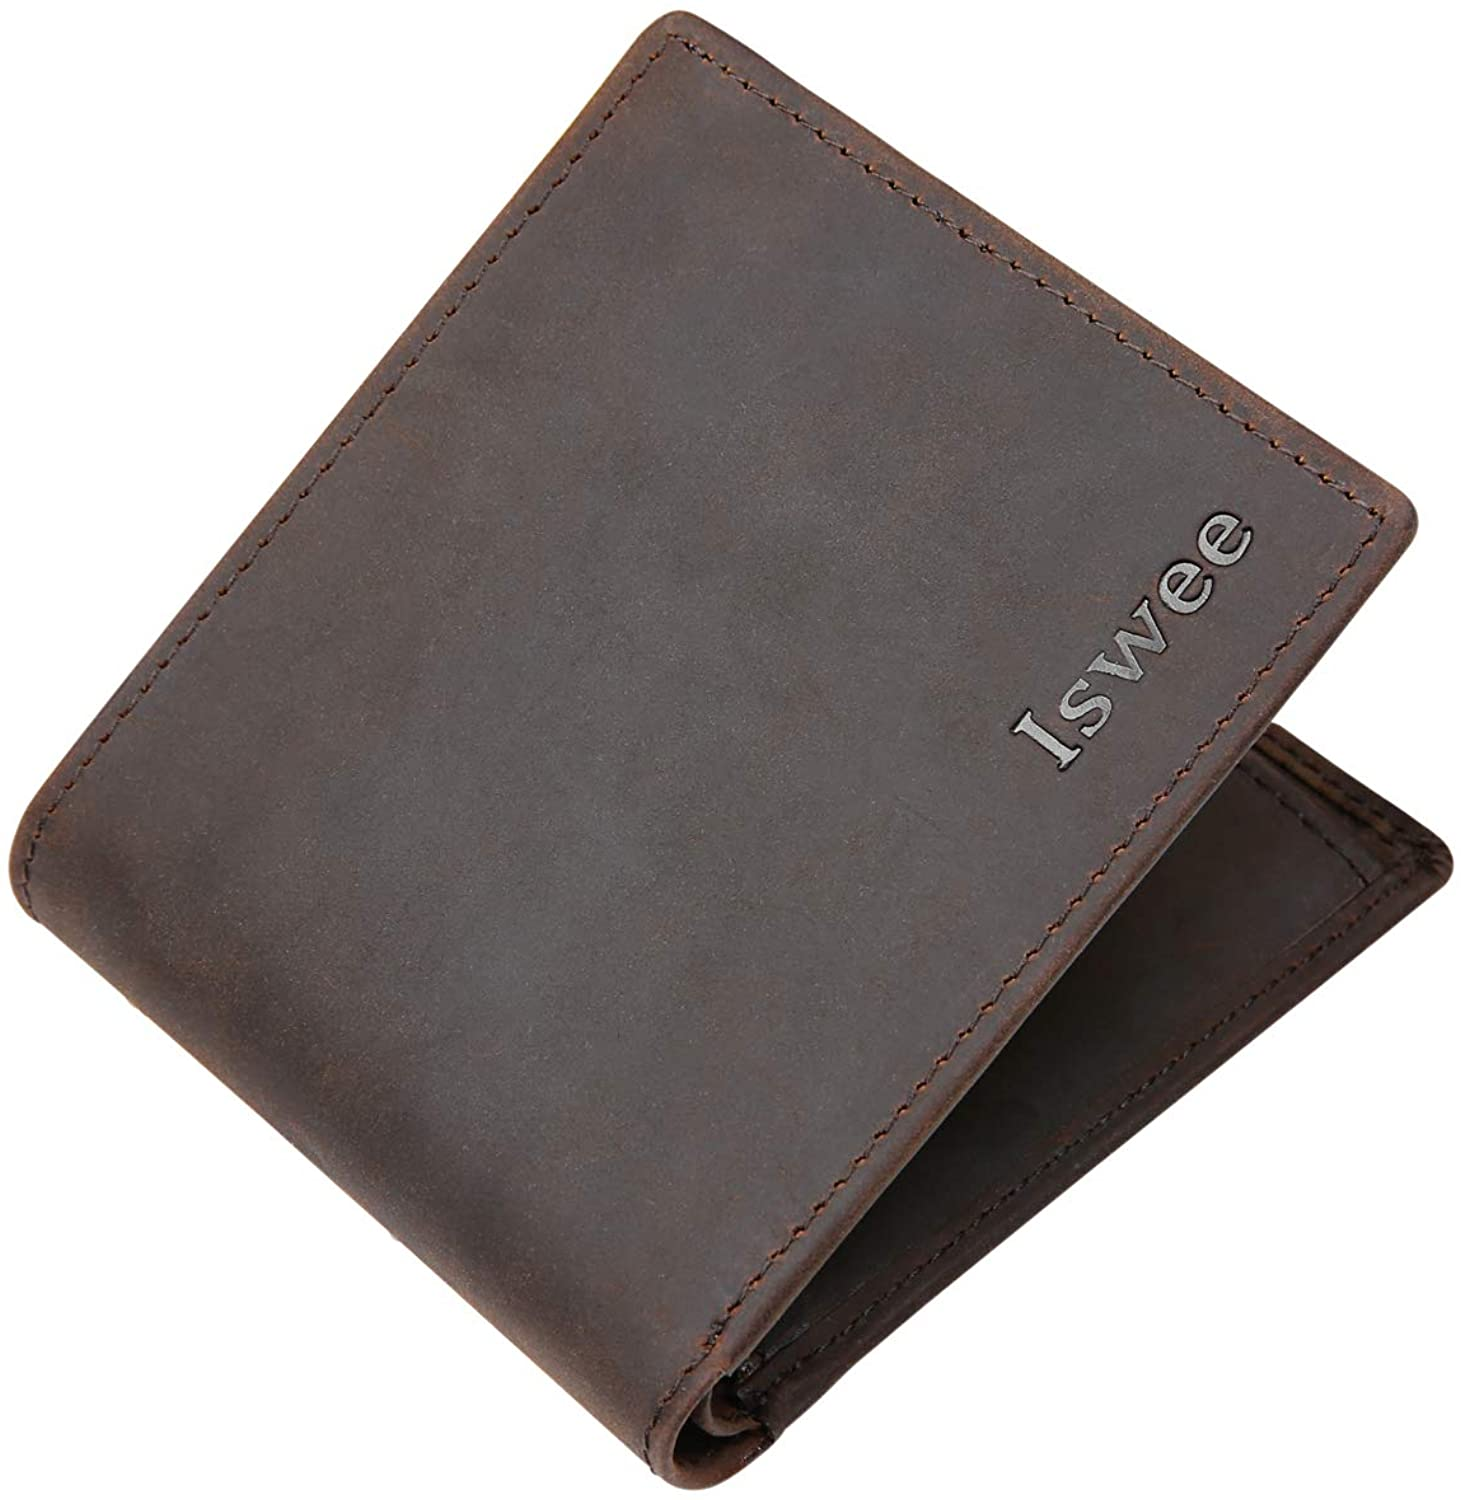 On Clearance Sale Iswee Wallets For Men RFID Blocking With ID Window RFID Blocking Leather Trifold Wallets